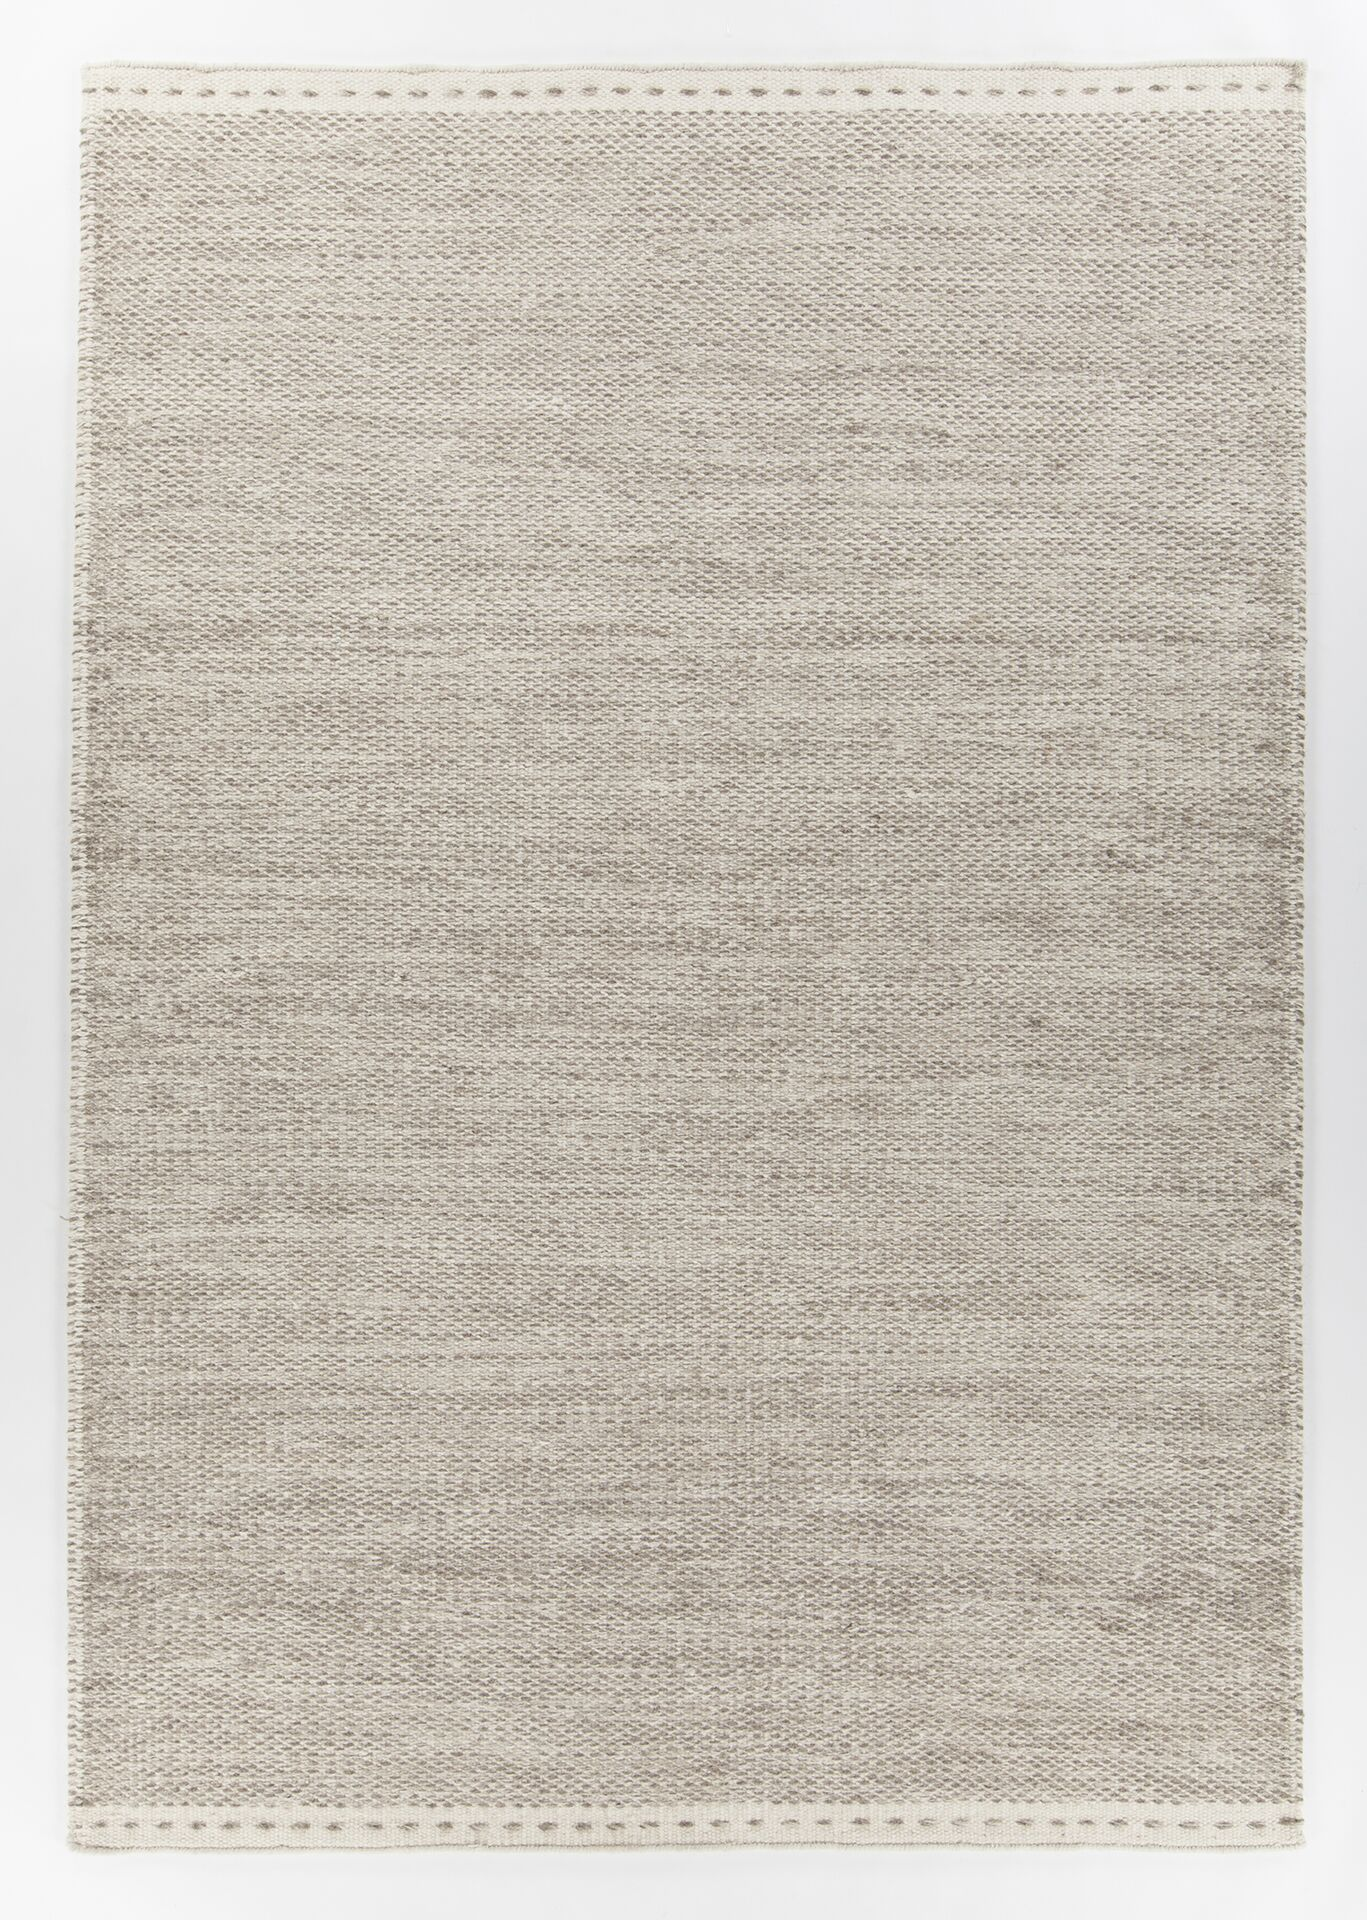 Speaks Hand-Woven Gray/White Area Rug Rug Size: 5' x 7'6